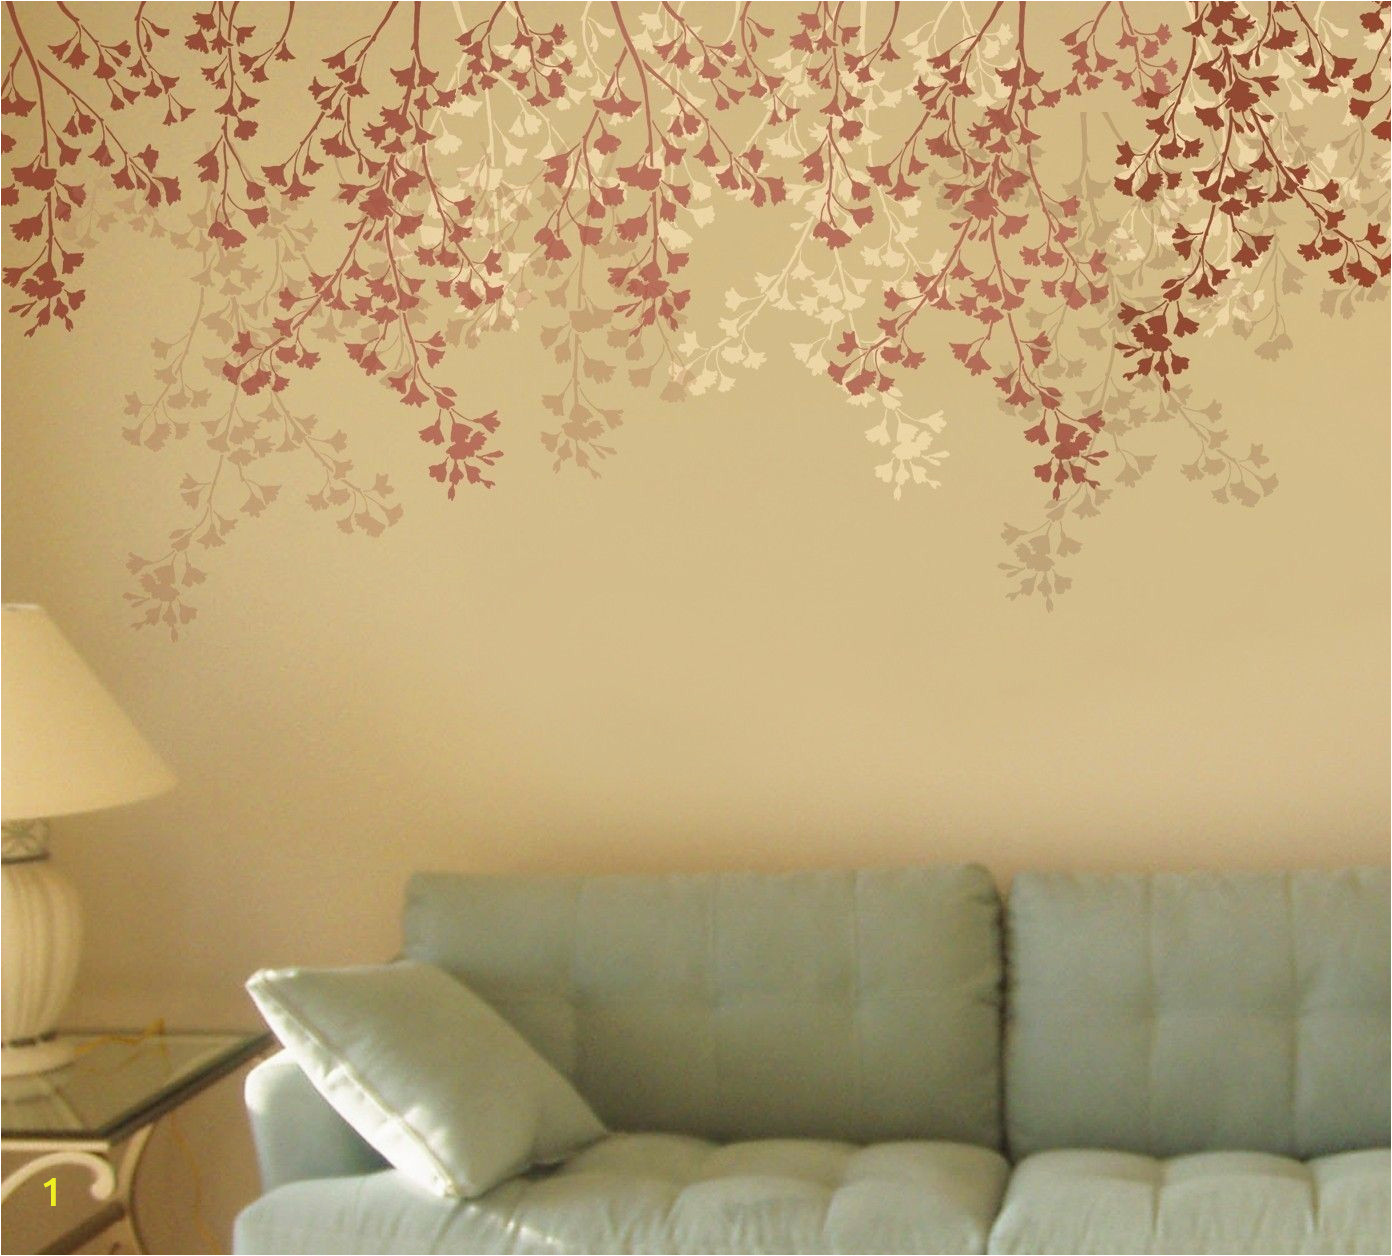 Large Wall Mural Stencils Stencil for Walls Weeping Cherry Stencil for